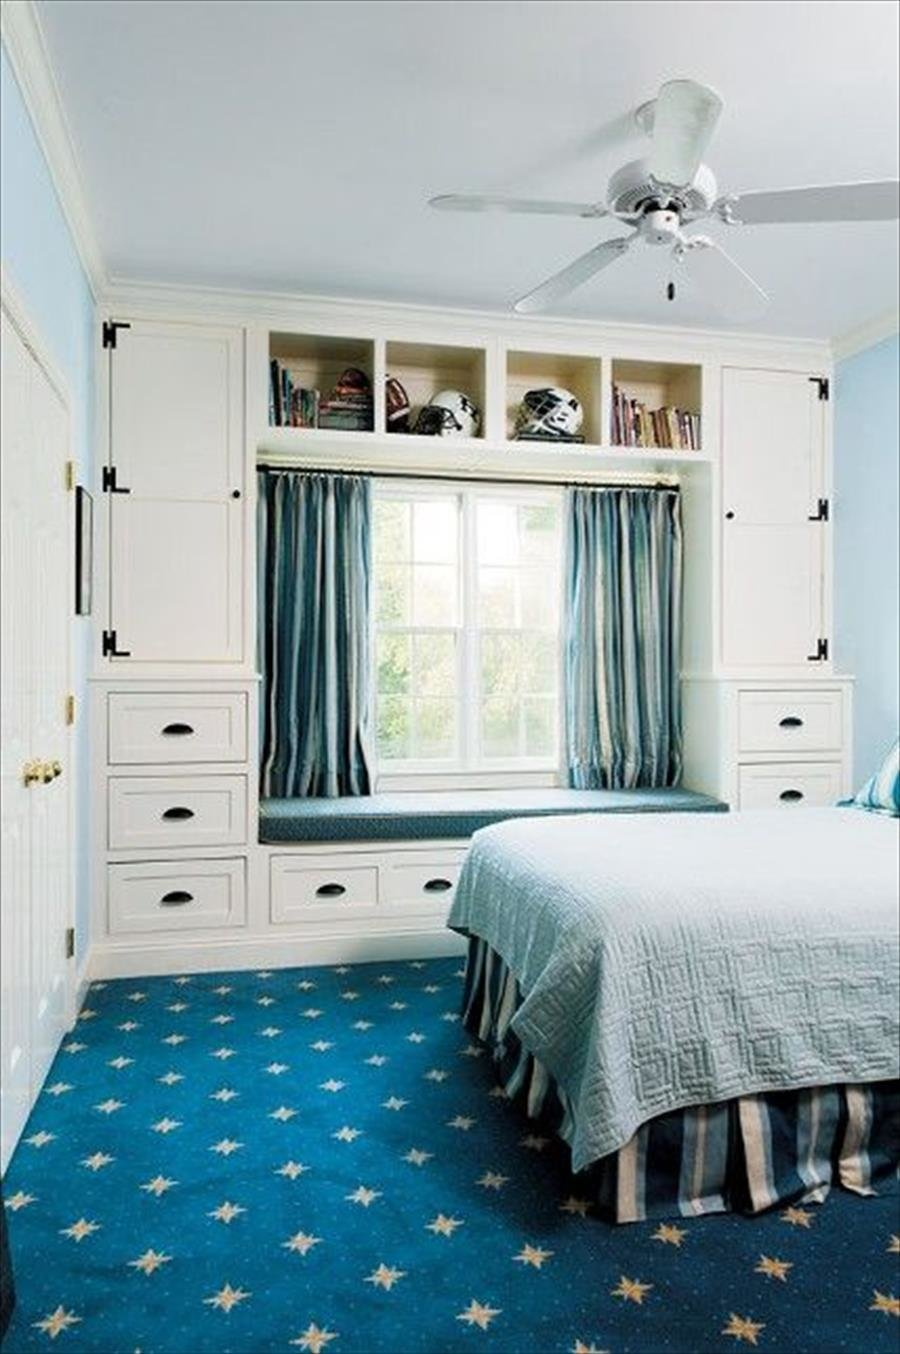 Best 31 Simple But Smart Bedroom Storage Ideas Interior G*D With Pictures